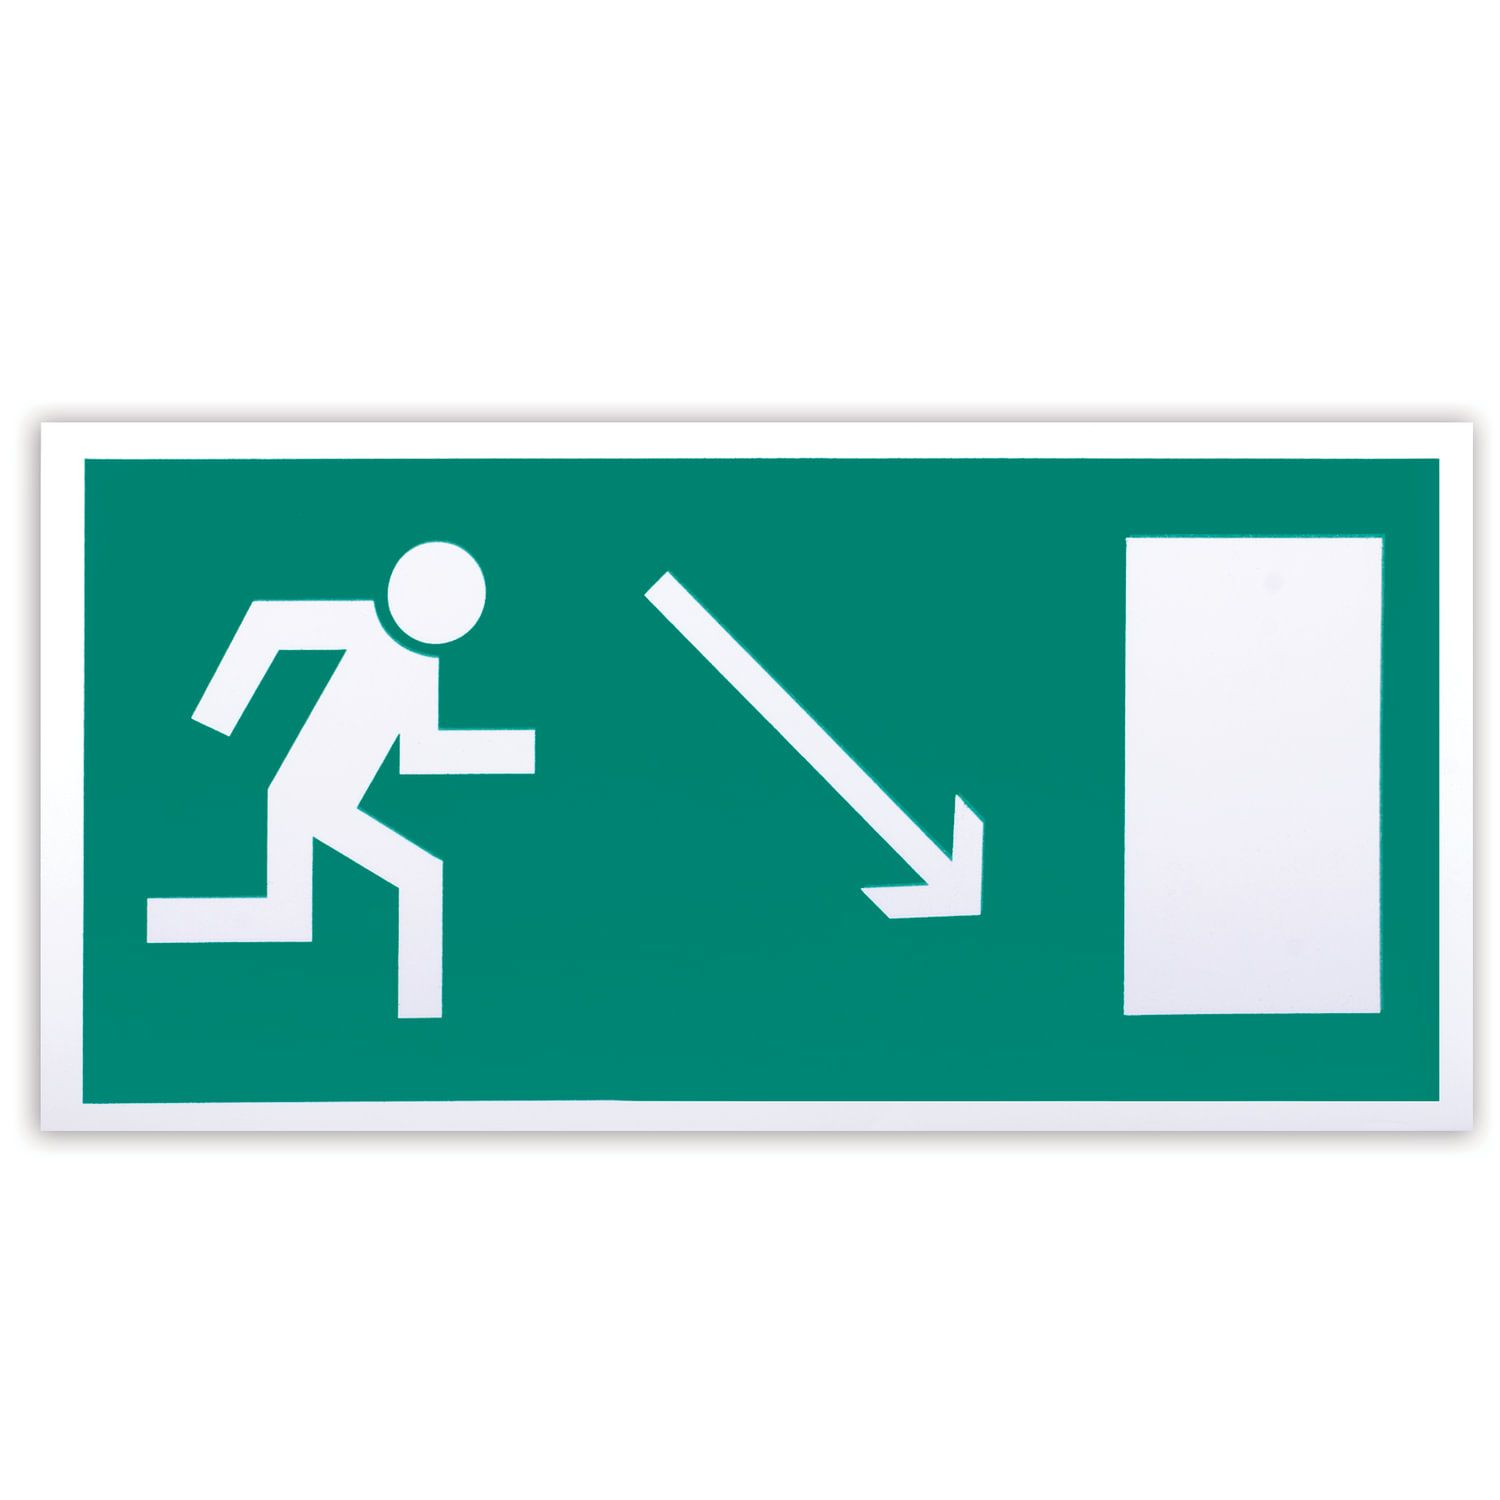 """Evacuation sign """"Direction to the evacuation exit to the right downward"""", 300x150 mm, self-adhesive, photoluminescent"""